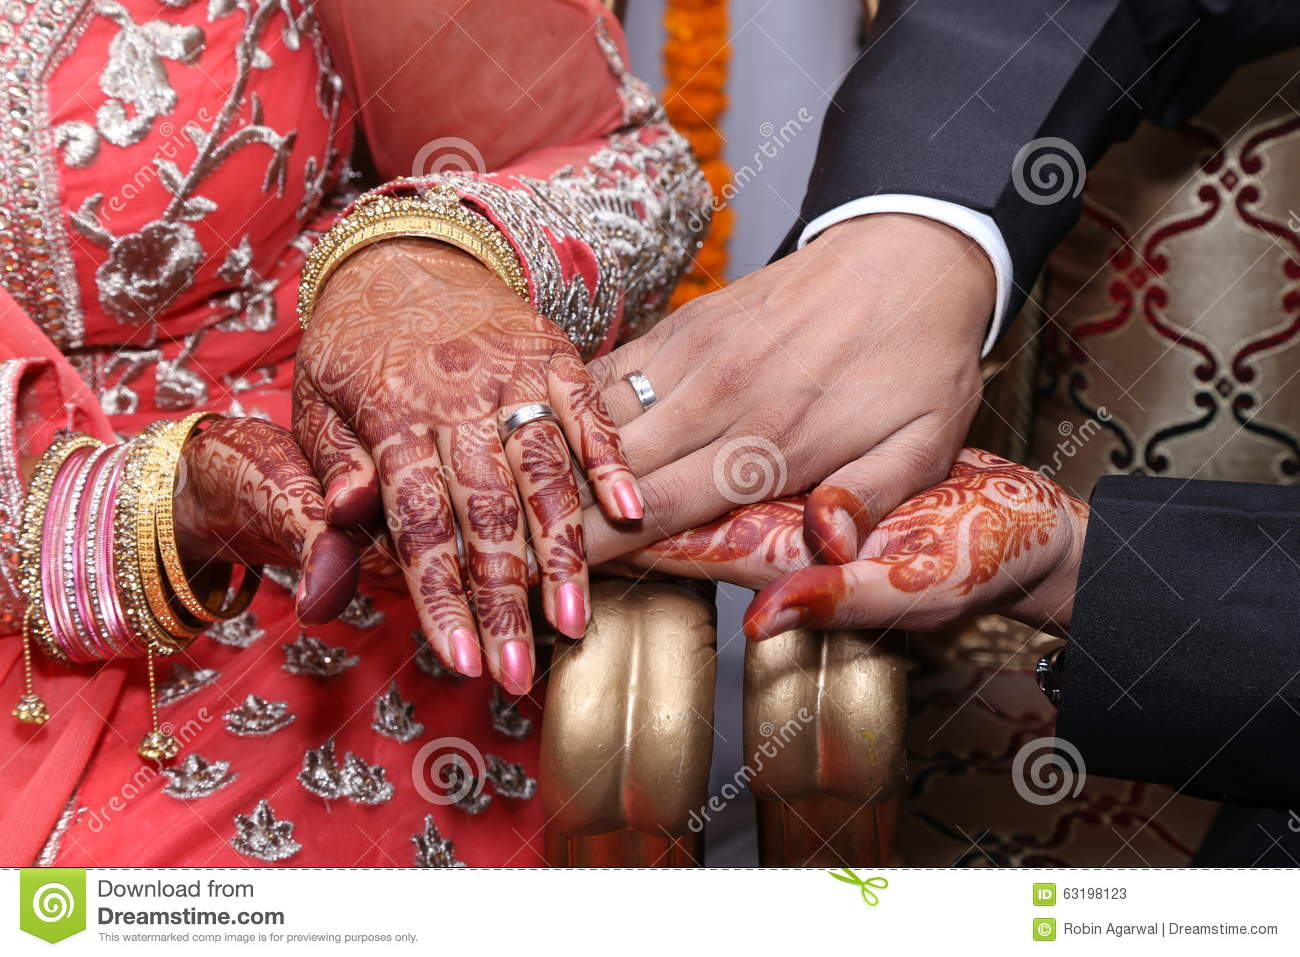 Hindu Wedding Ring Ceremony Stock Image Image of couple ceremony